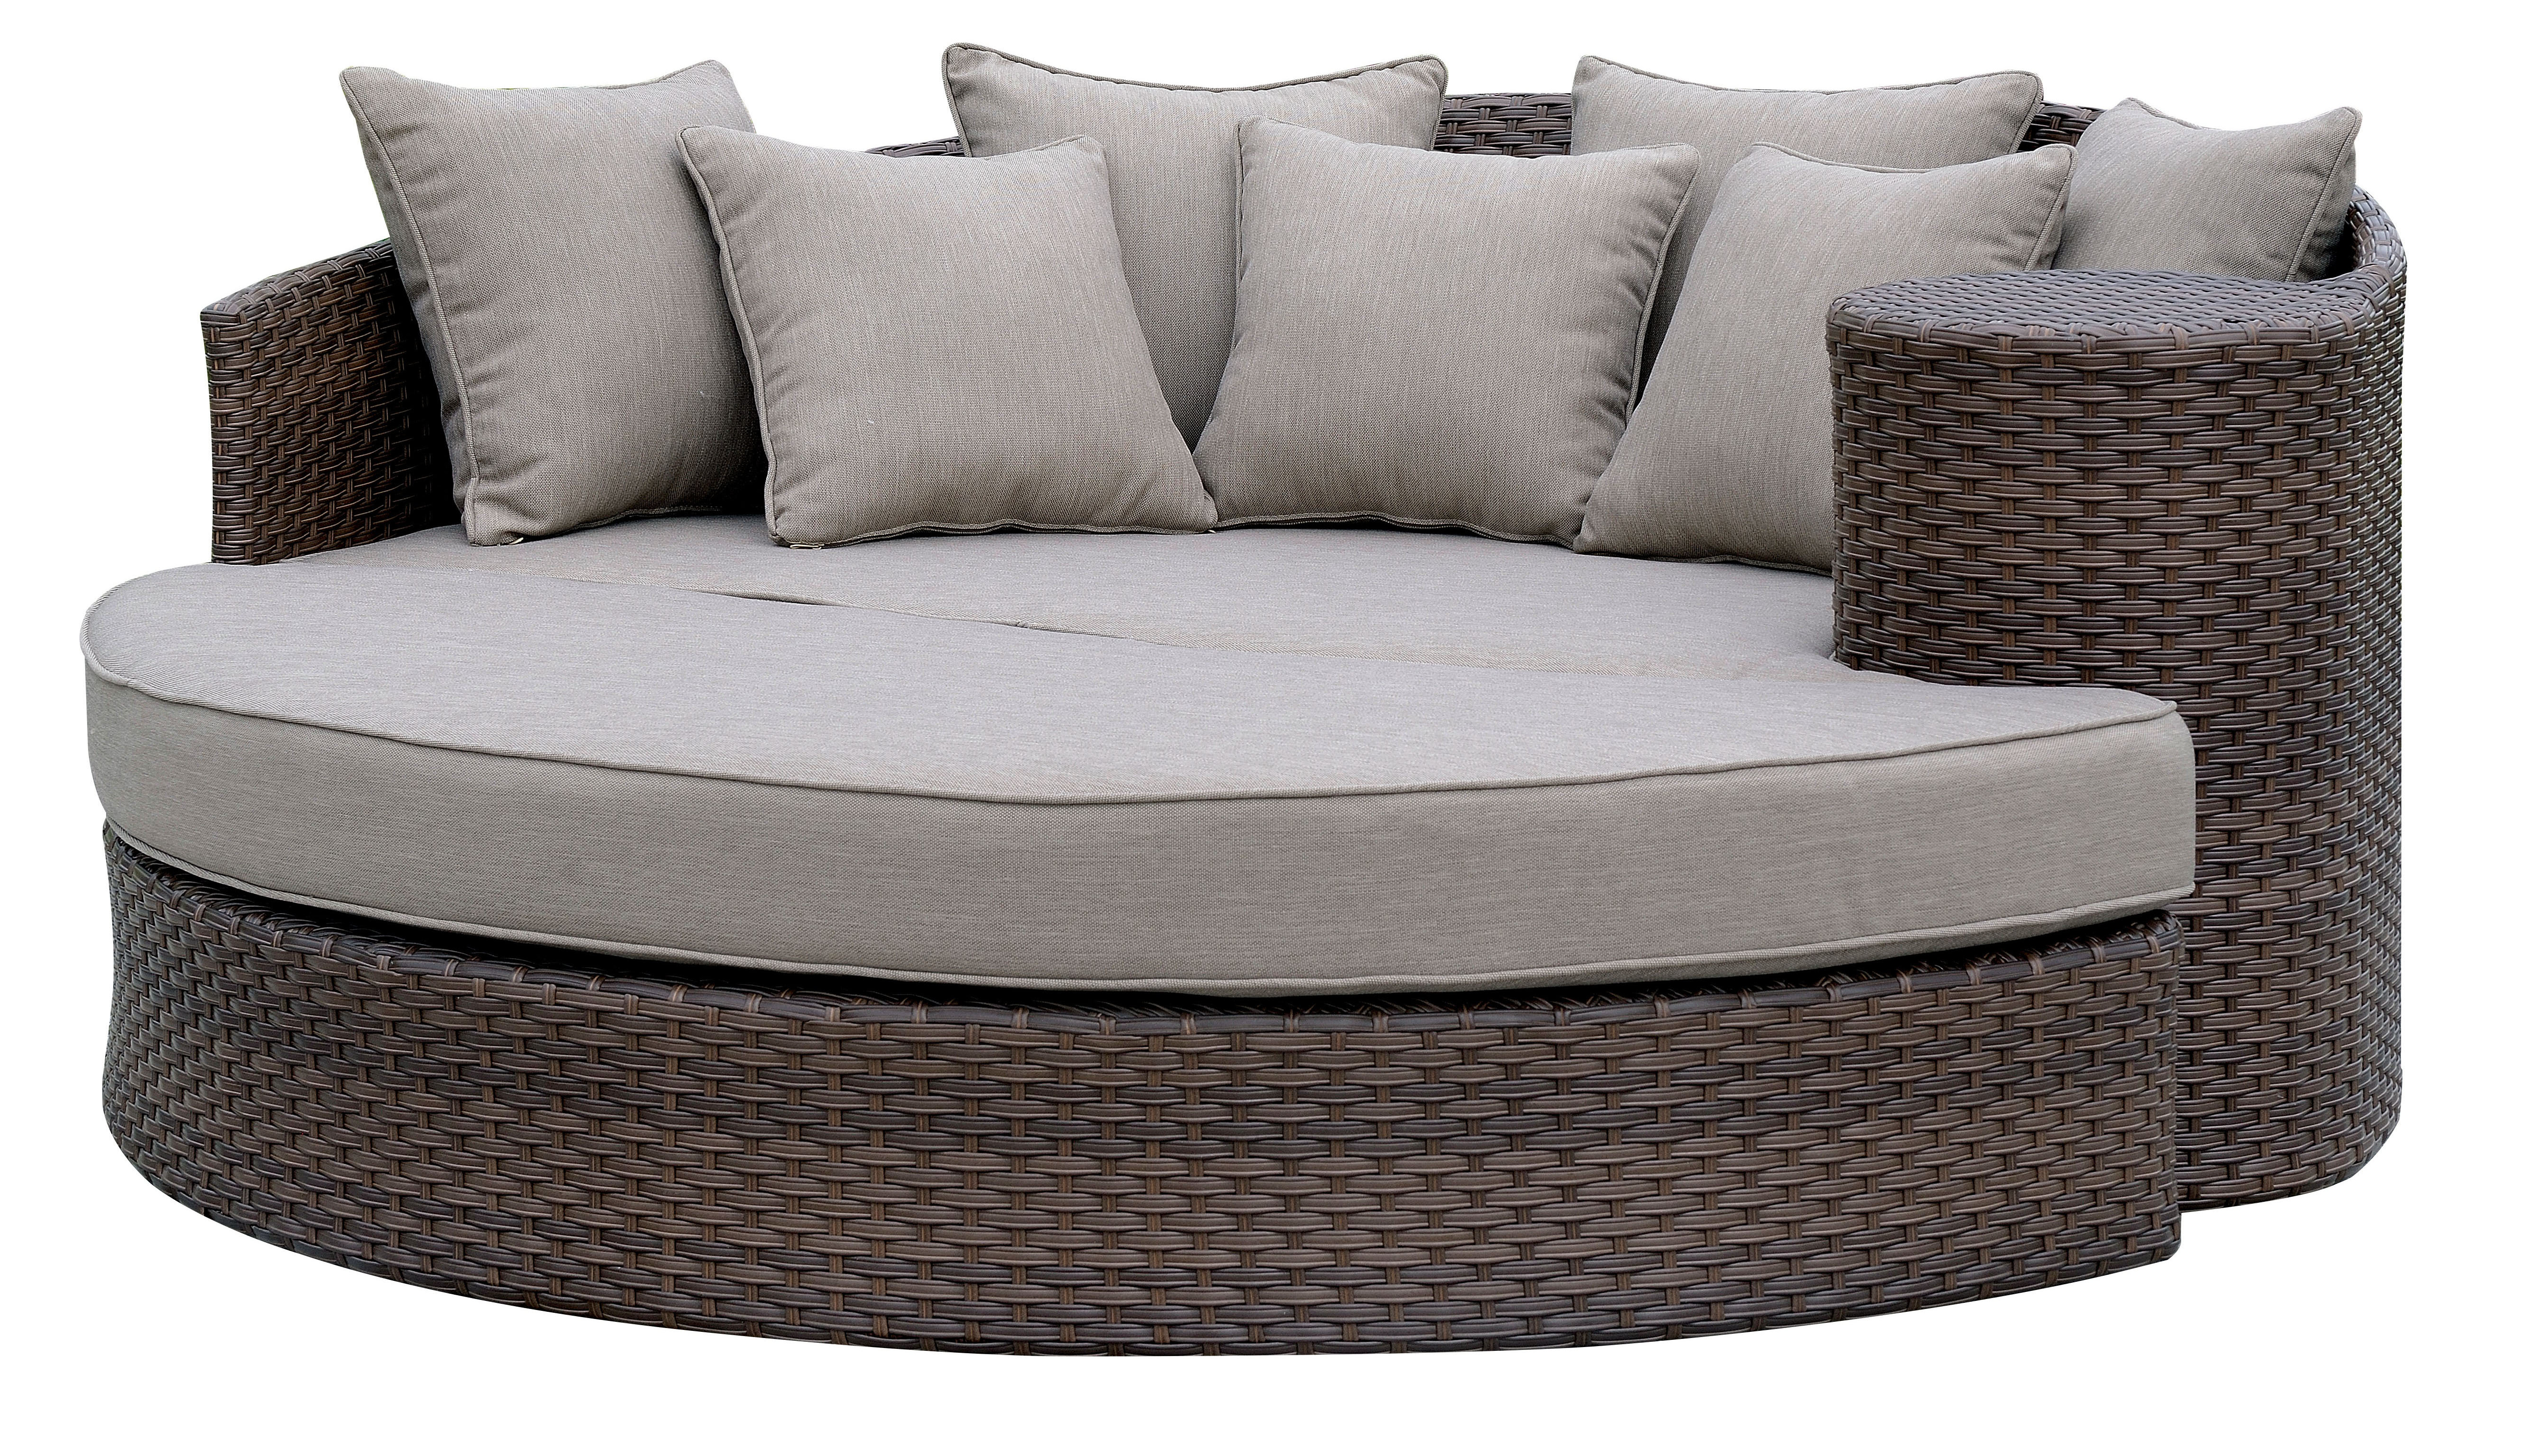 Whyte Contemporary Patio Daybed With Cushions For Most Current Patio Daybeds With Cushions (View 11 of 20)